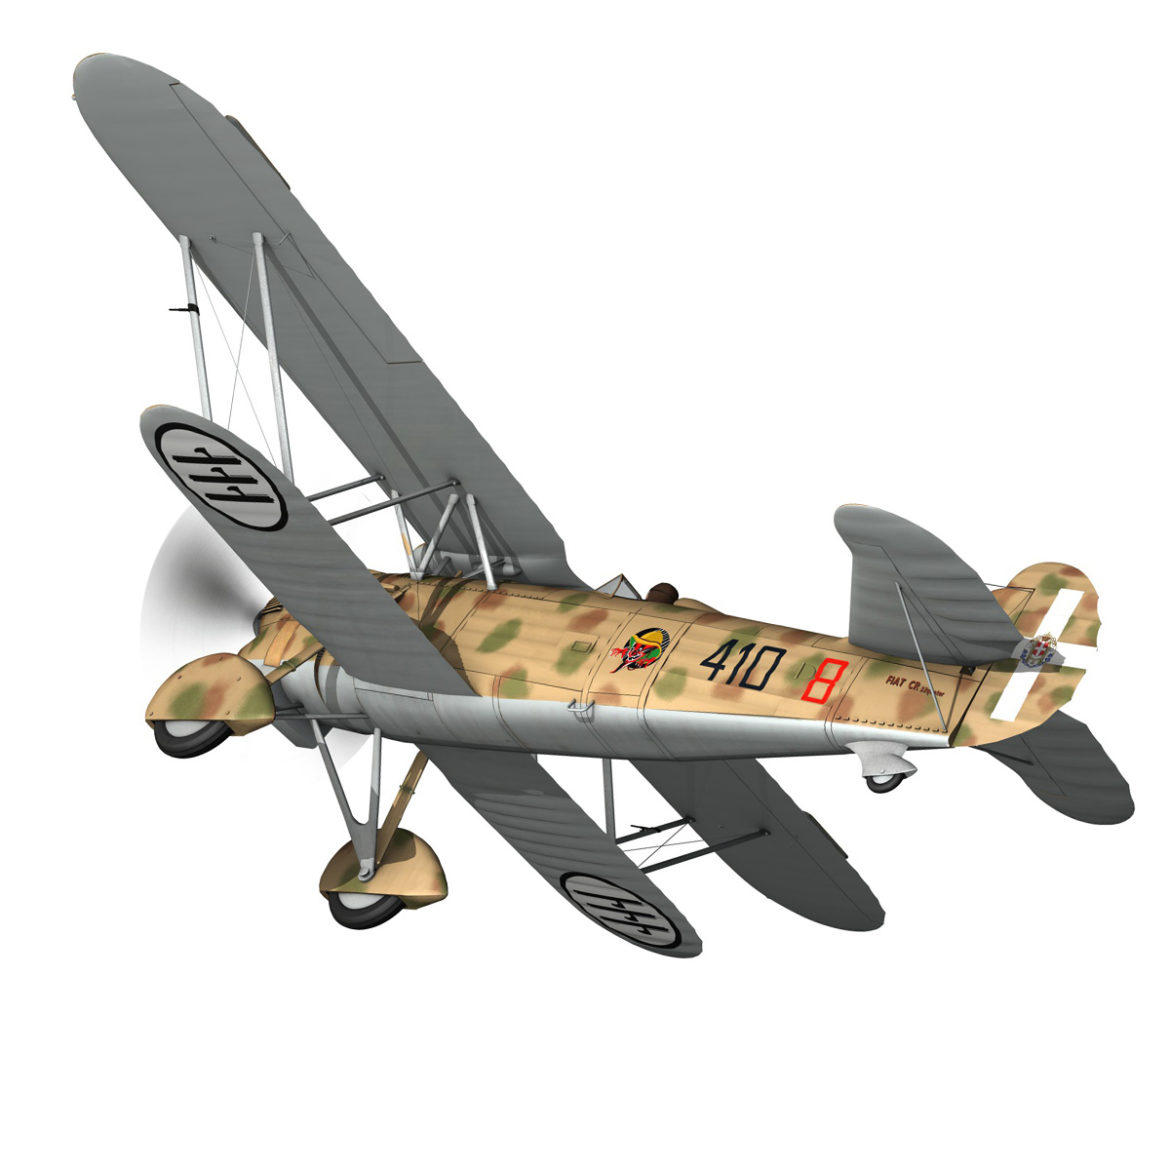 fiat cr.32 – italy airforce – 410 squadriglia 3d model fbx c4d lwo obj 307545